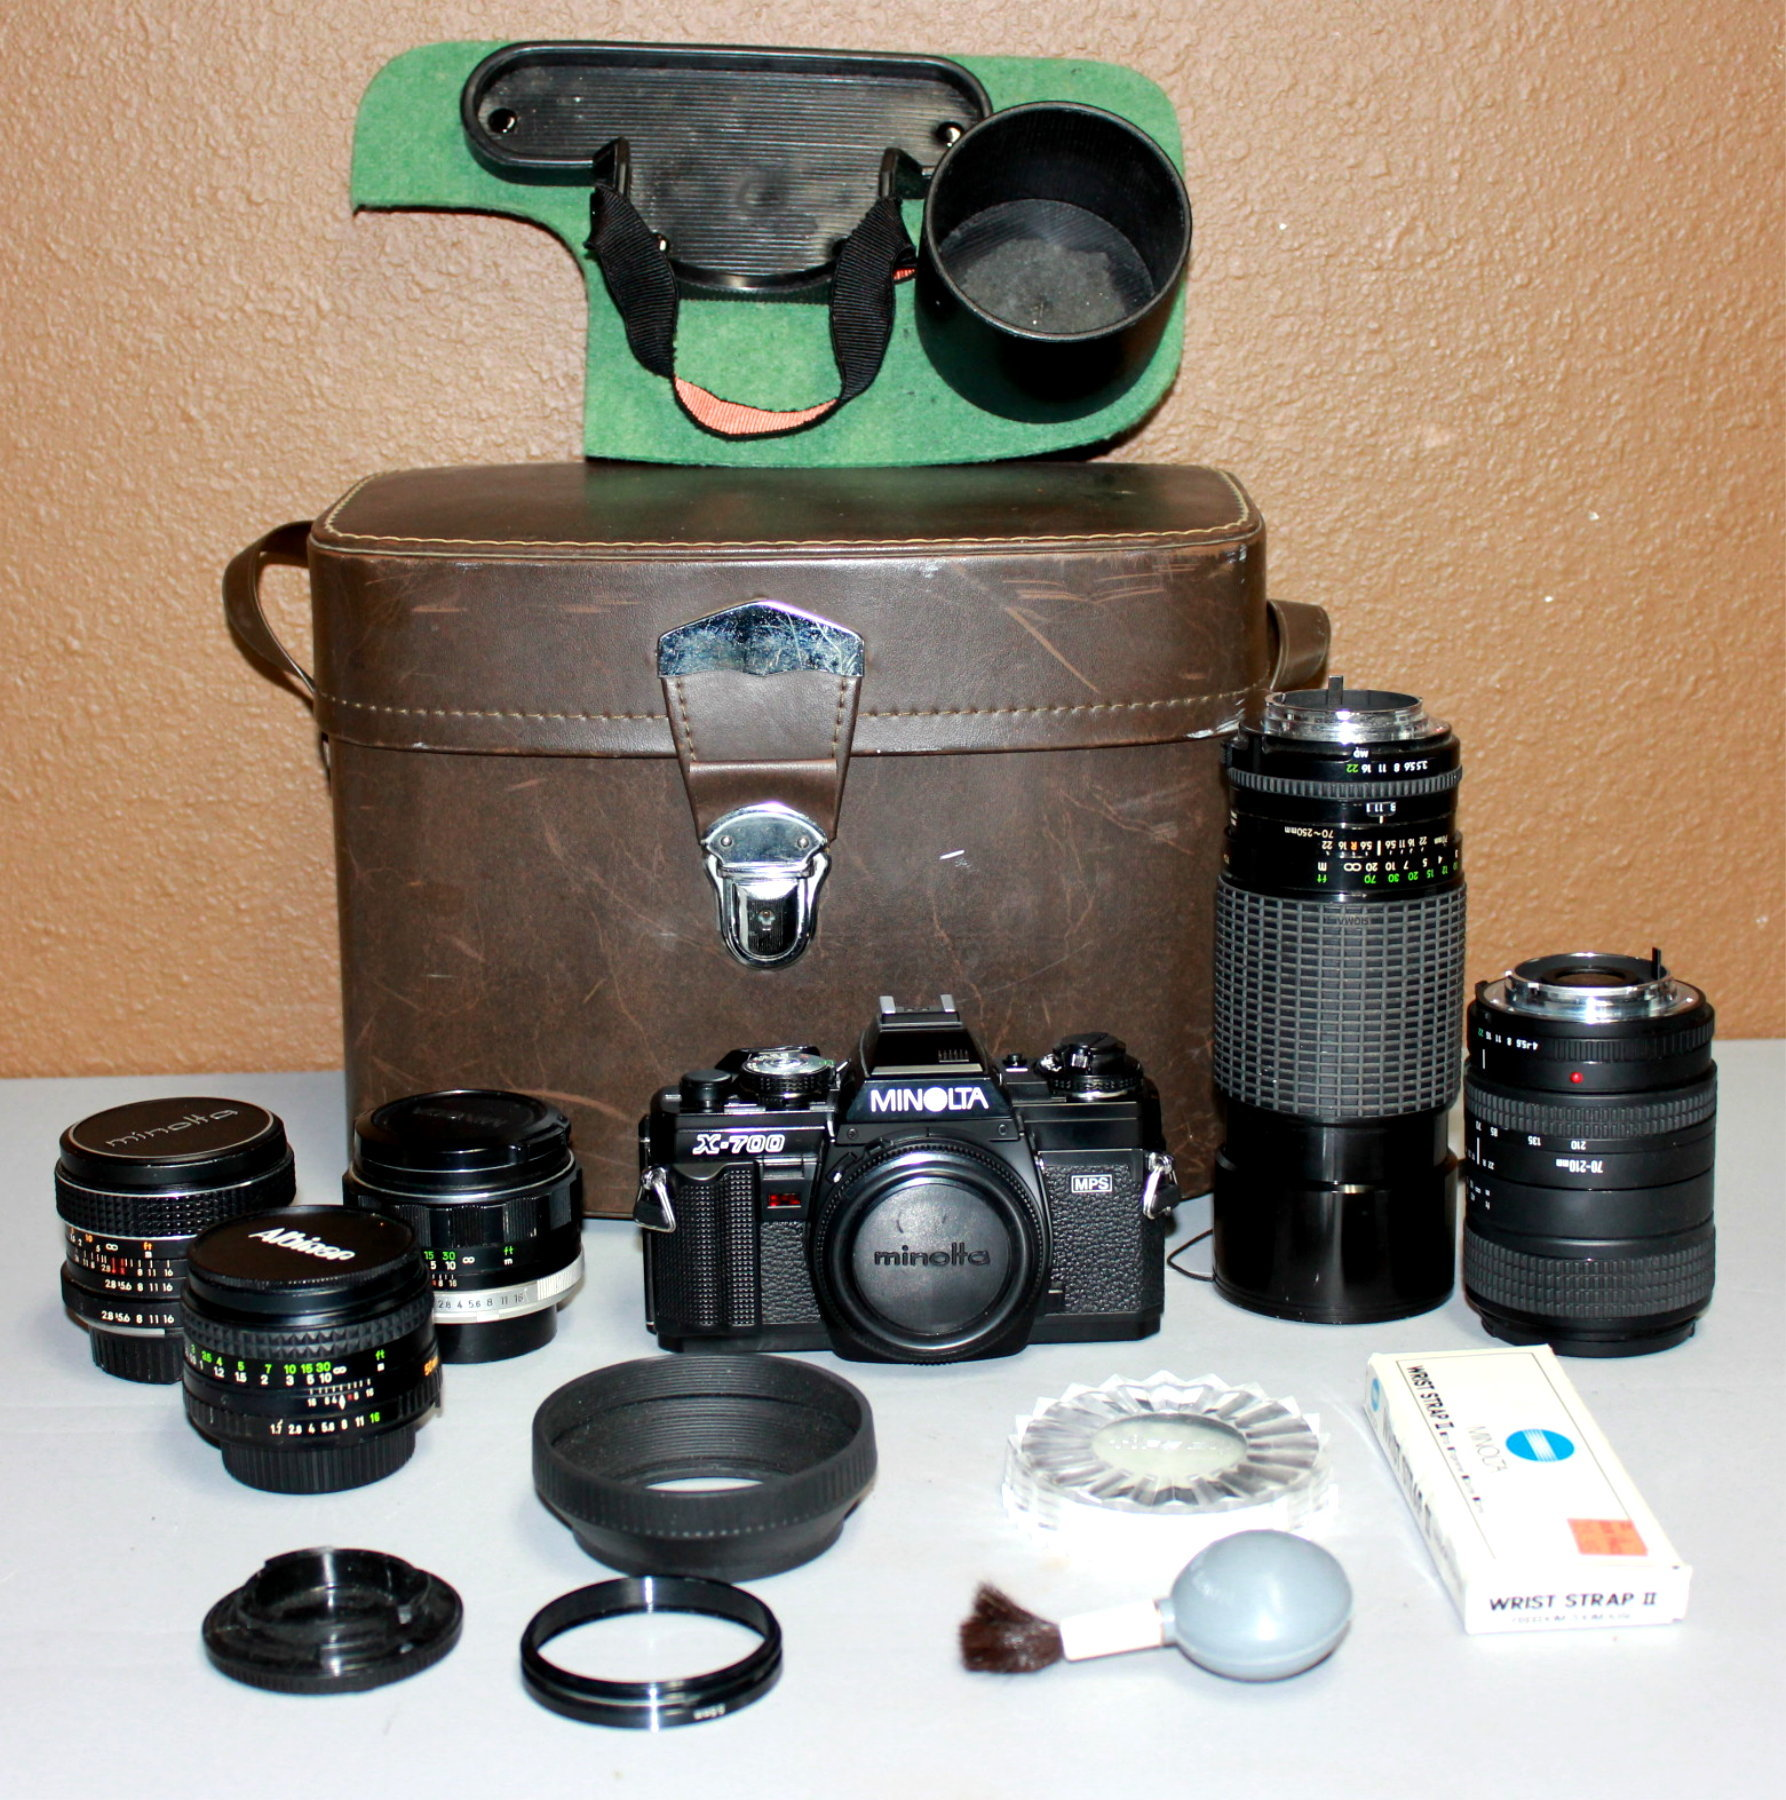 MINOLTA X-700 FILM CAMERA W/MULTIPLE LENSES & ACCESSORIES